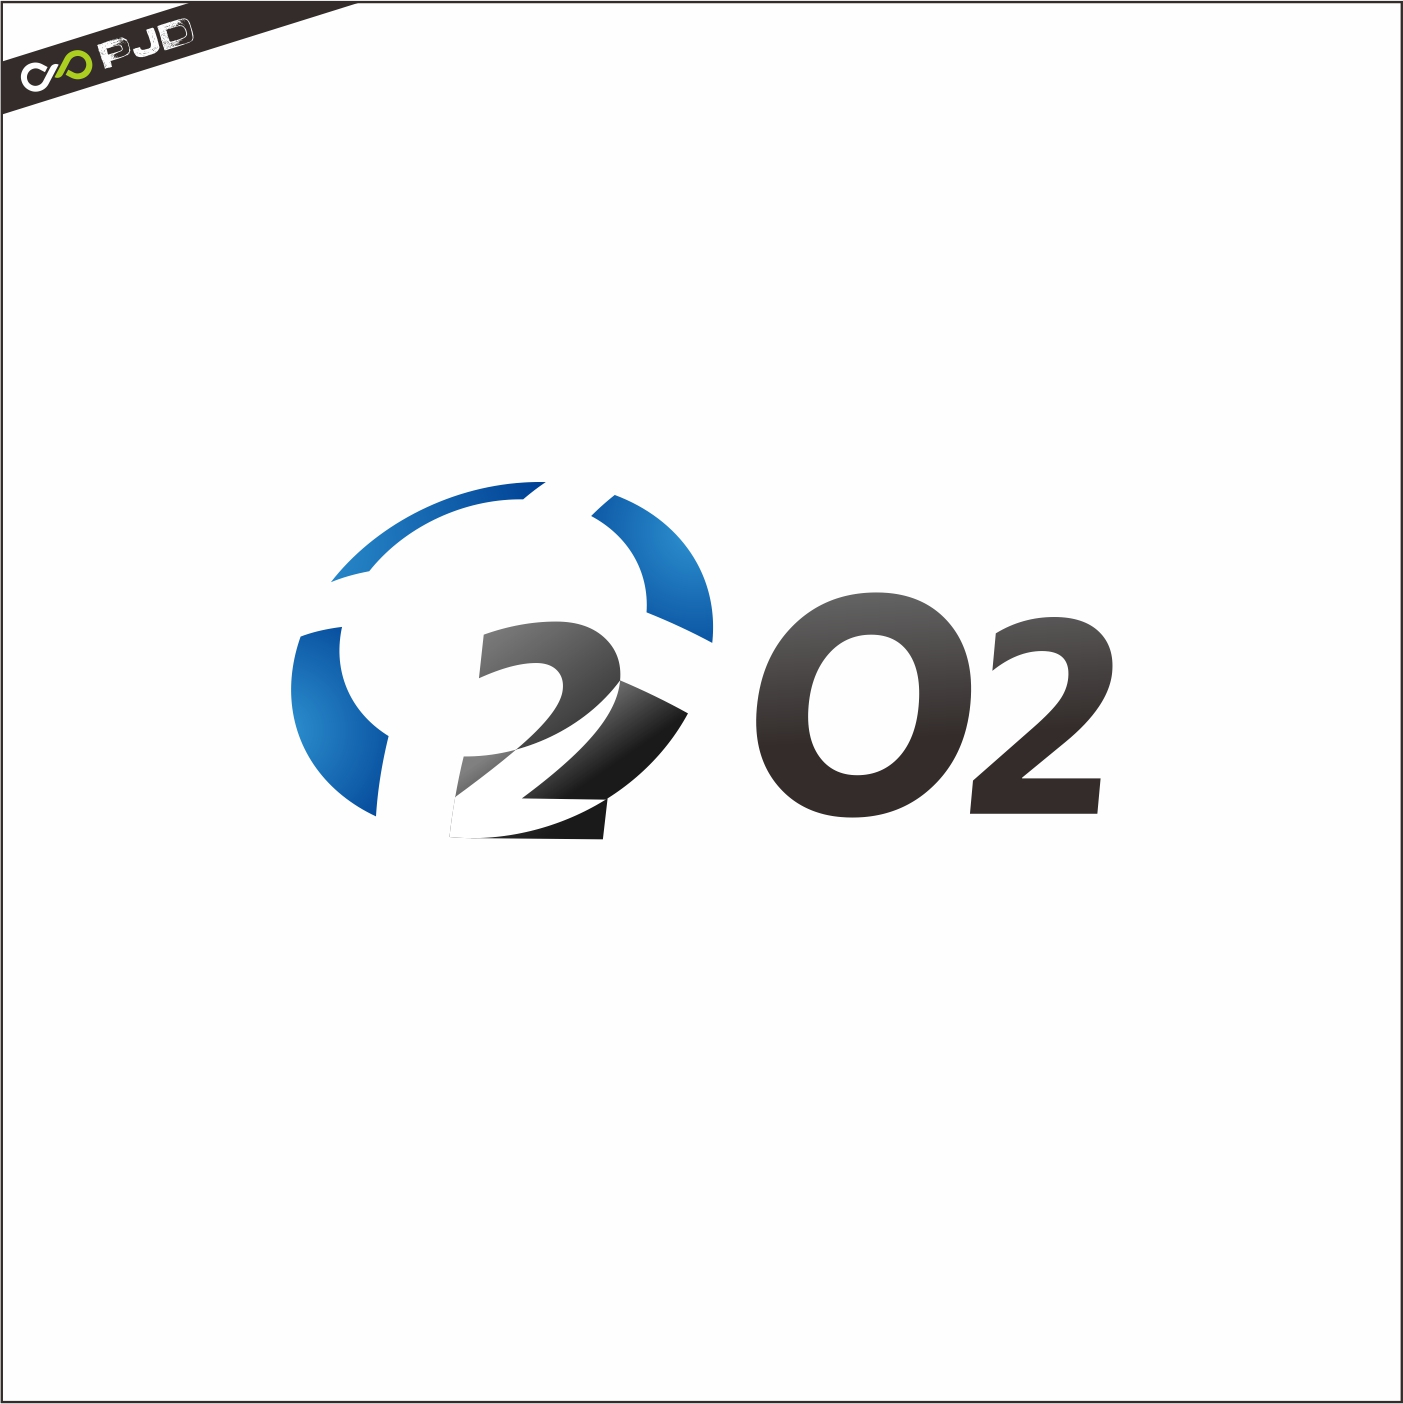 Logo Design by PJD - Entry No. 193 in the Logo Design Contest Artistic Logo Design for O2.